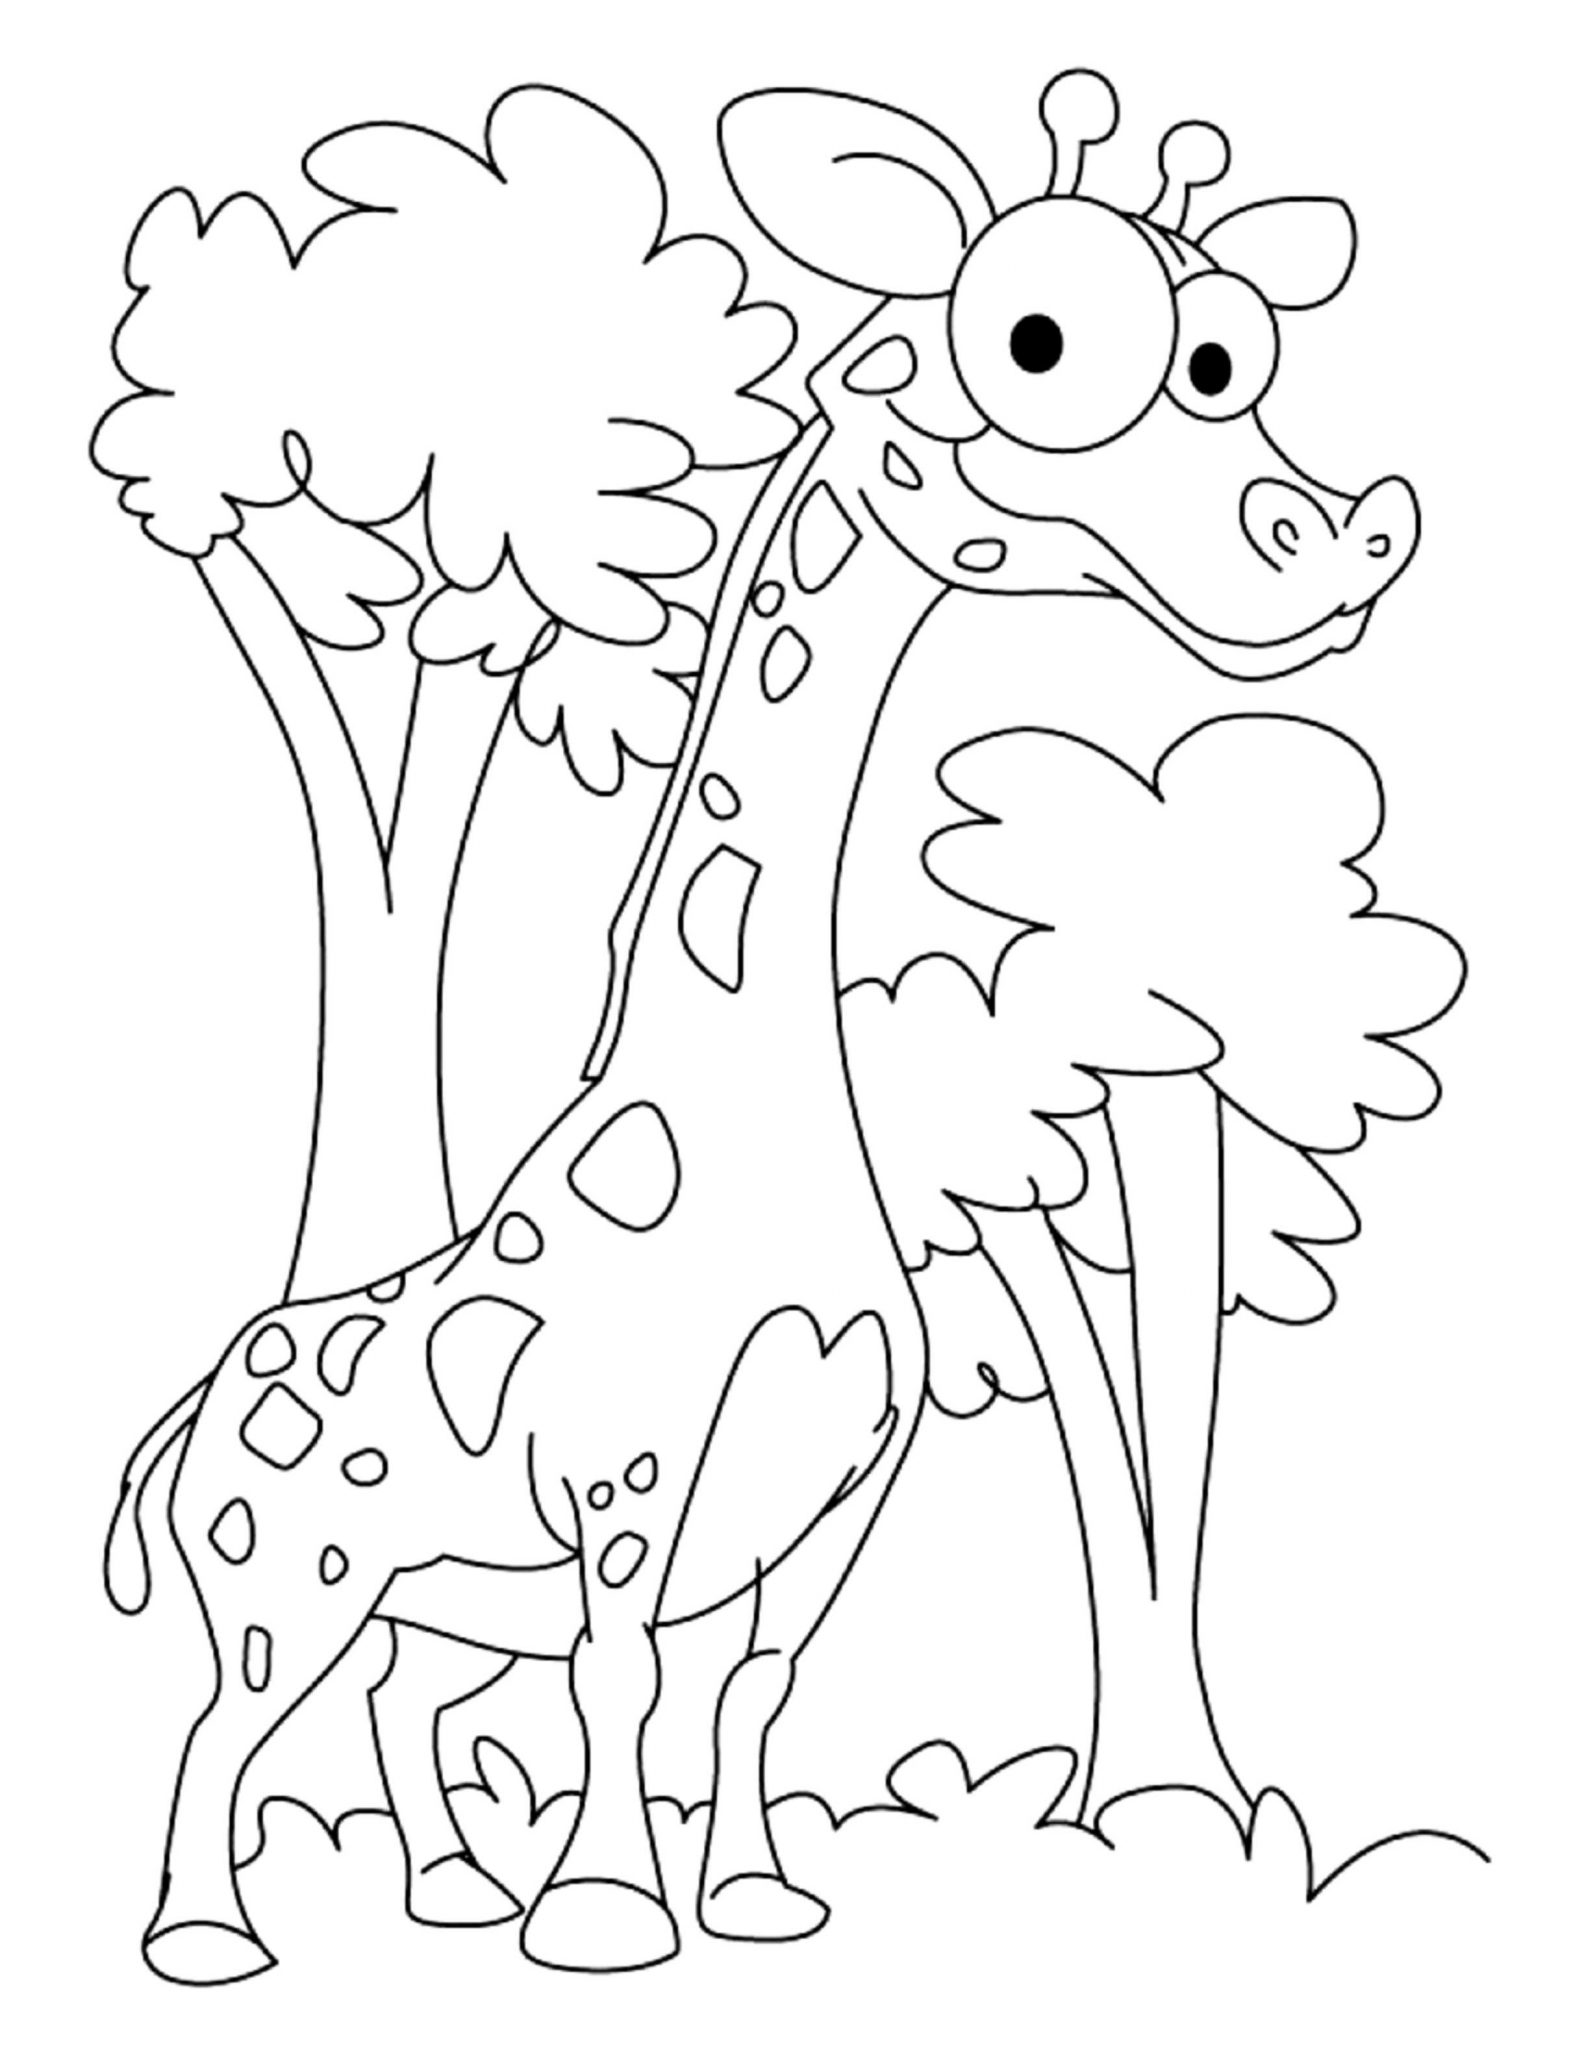 baby giraffe pictures to color zoo baby giraffe coloring page giraffe coloring pages to color pictures baby giraffe